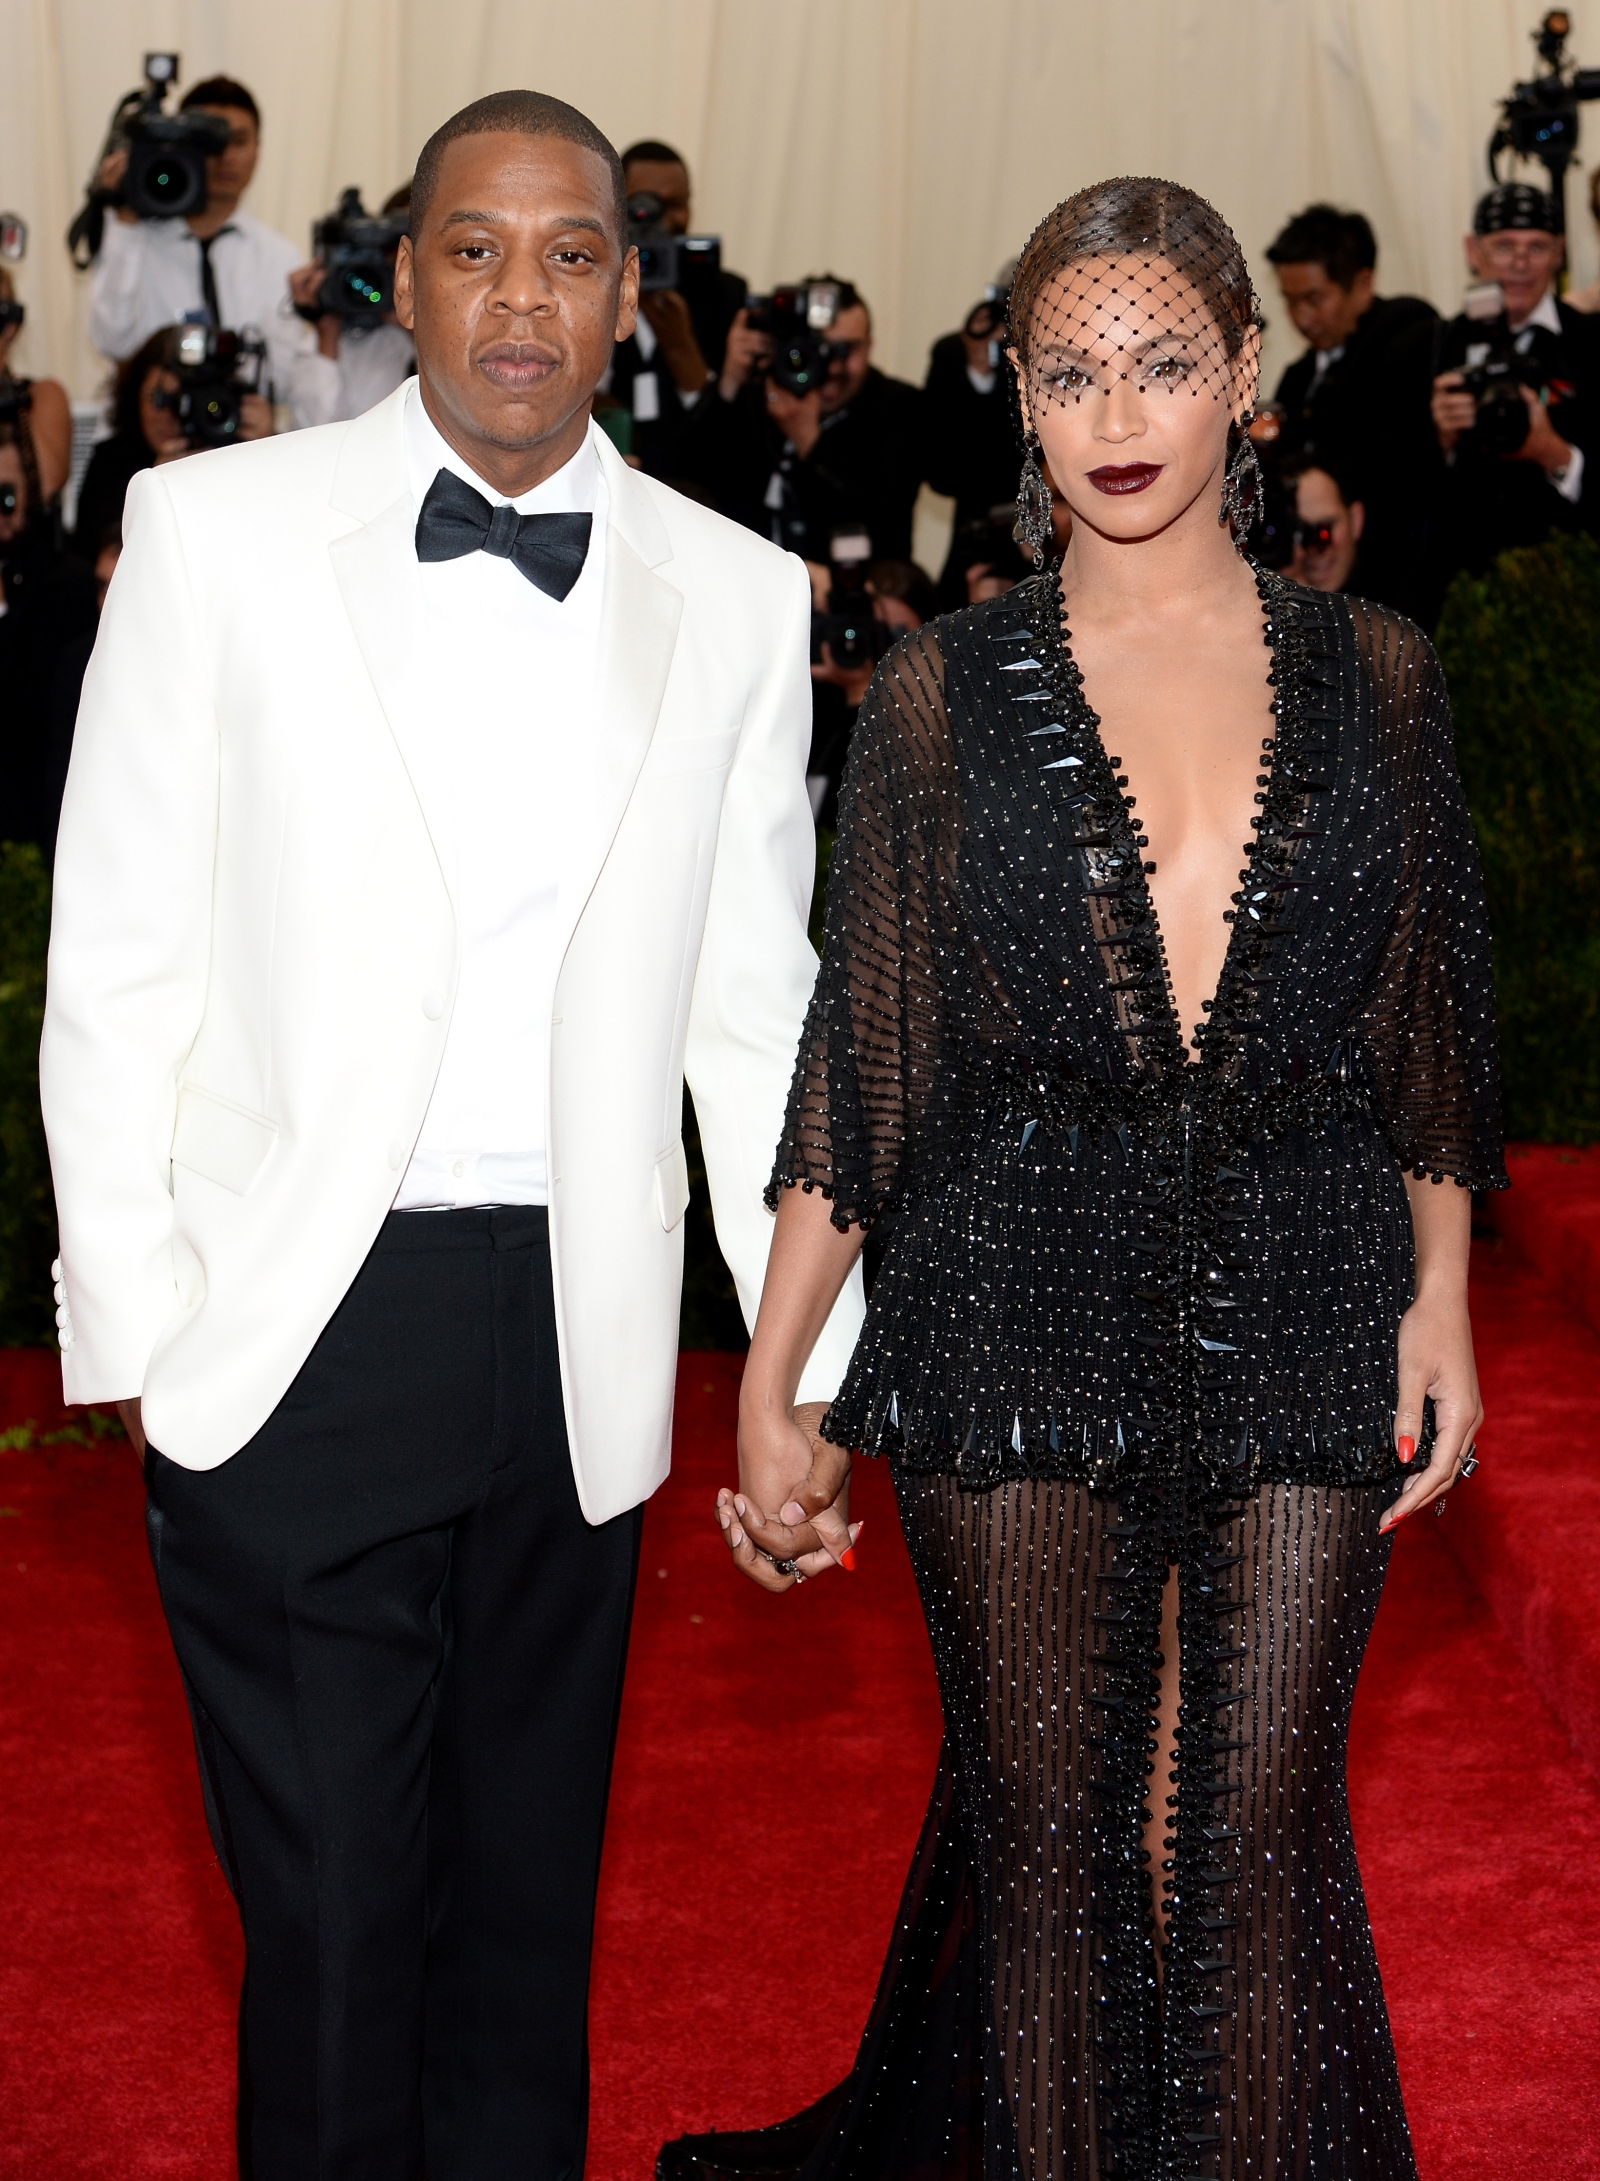 Beyoncé and Jay Z at the Met Gala